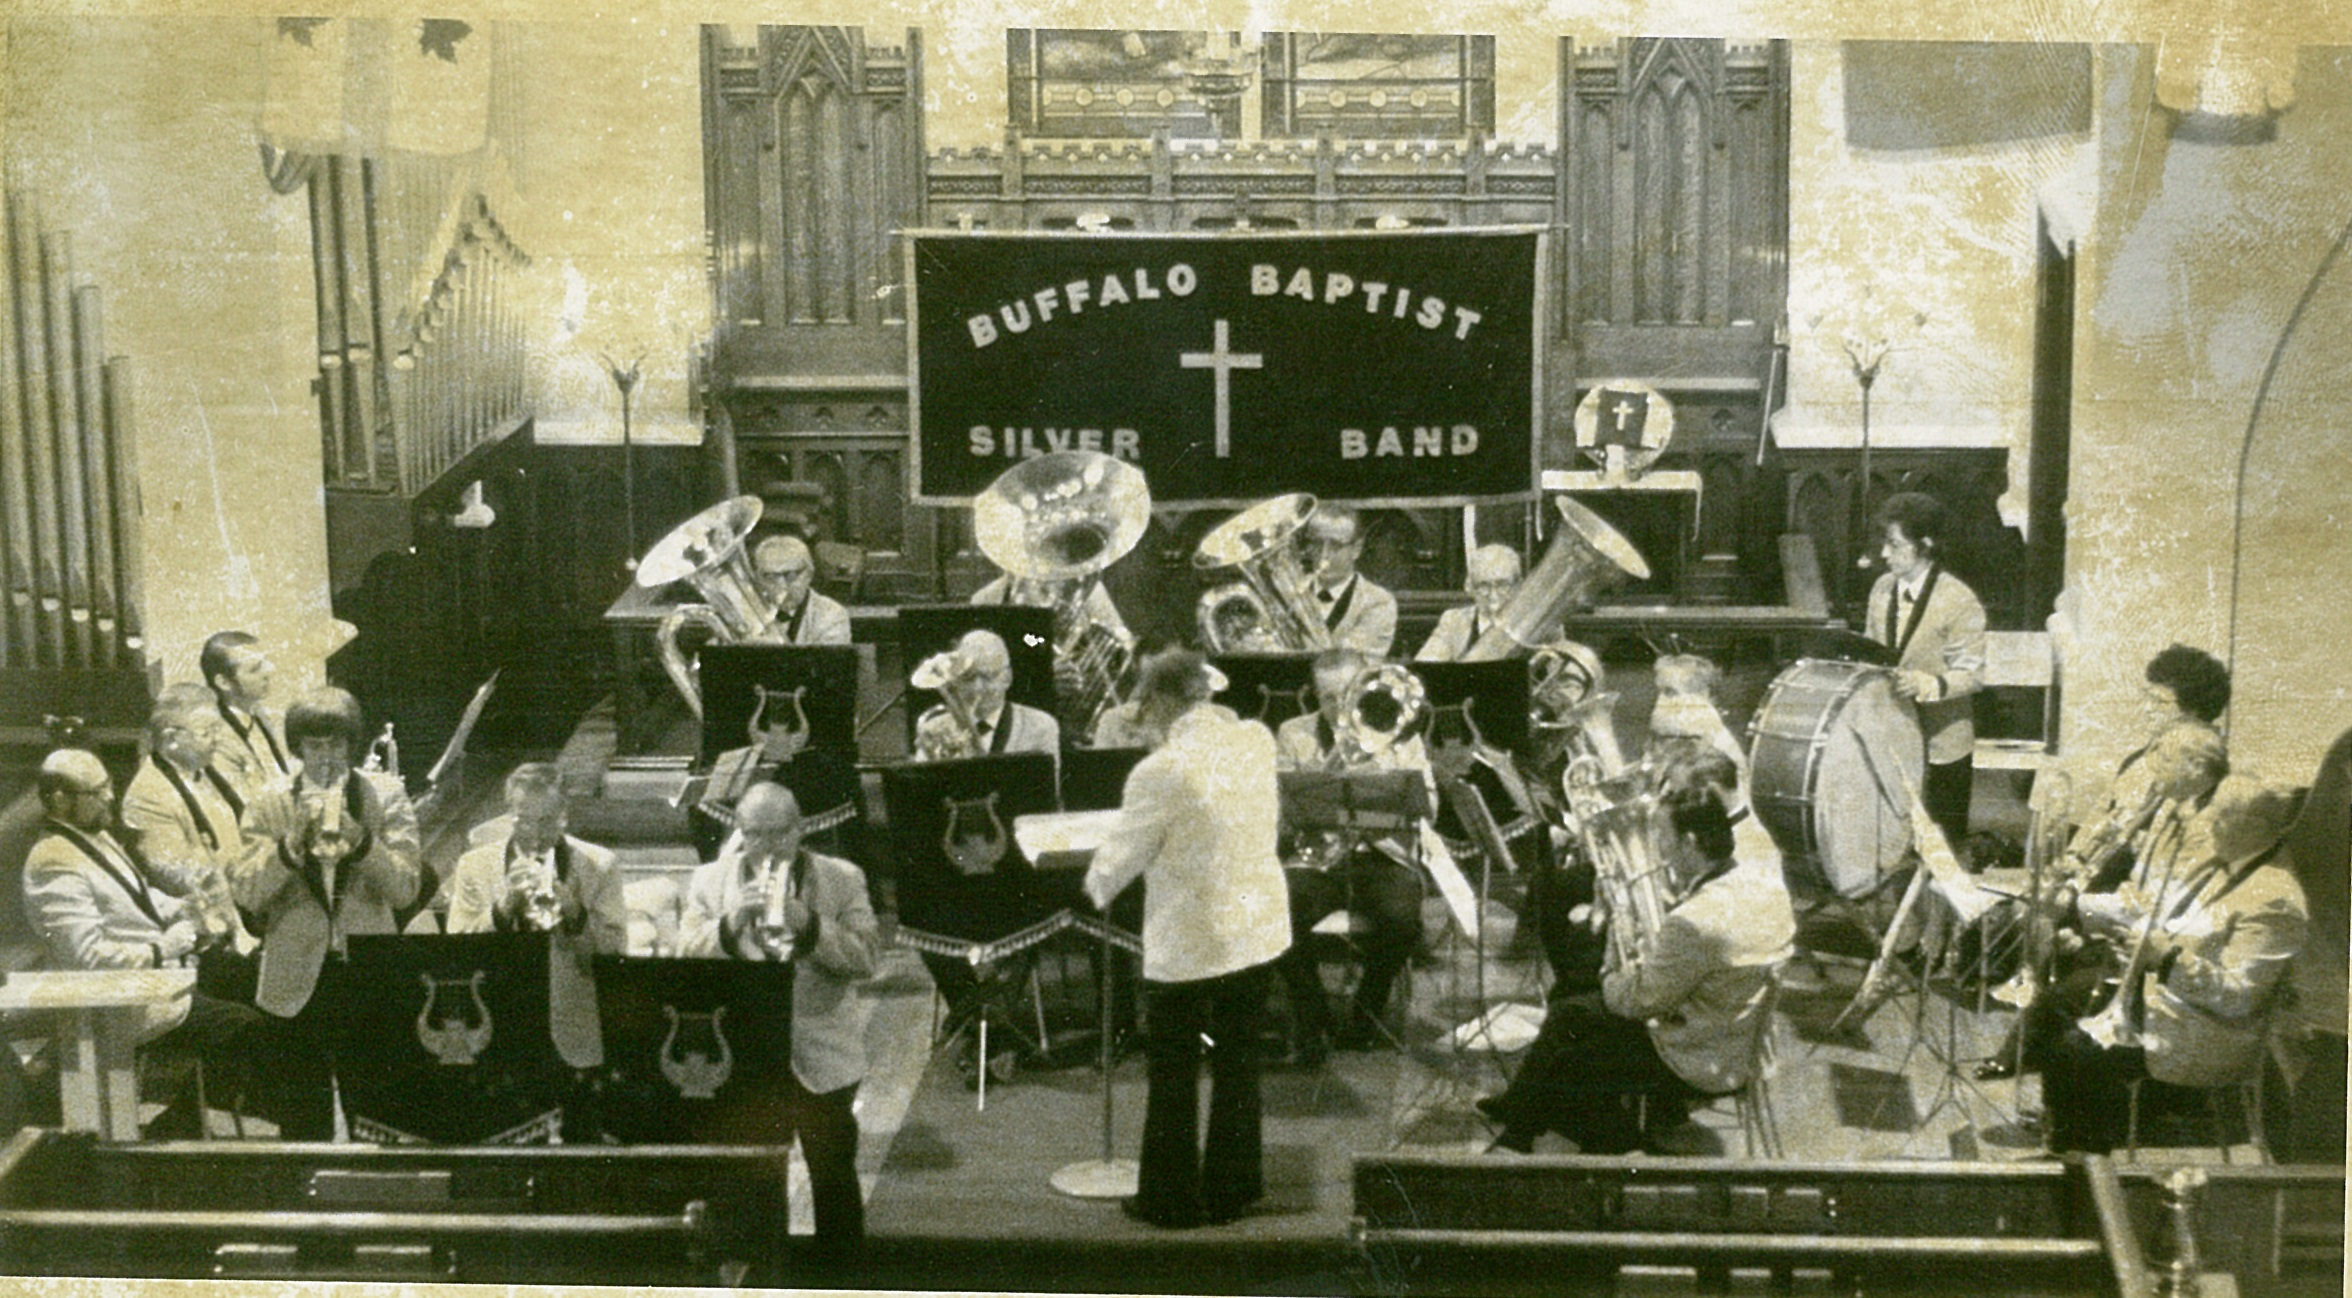 Buffalo Baptists Silver Band · Fort Erie Local History